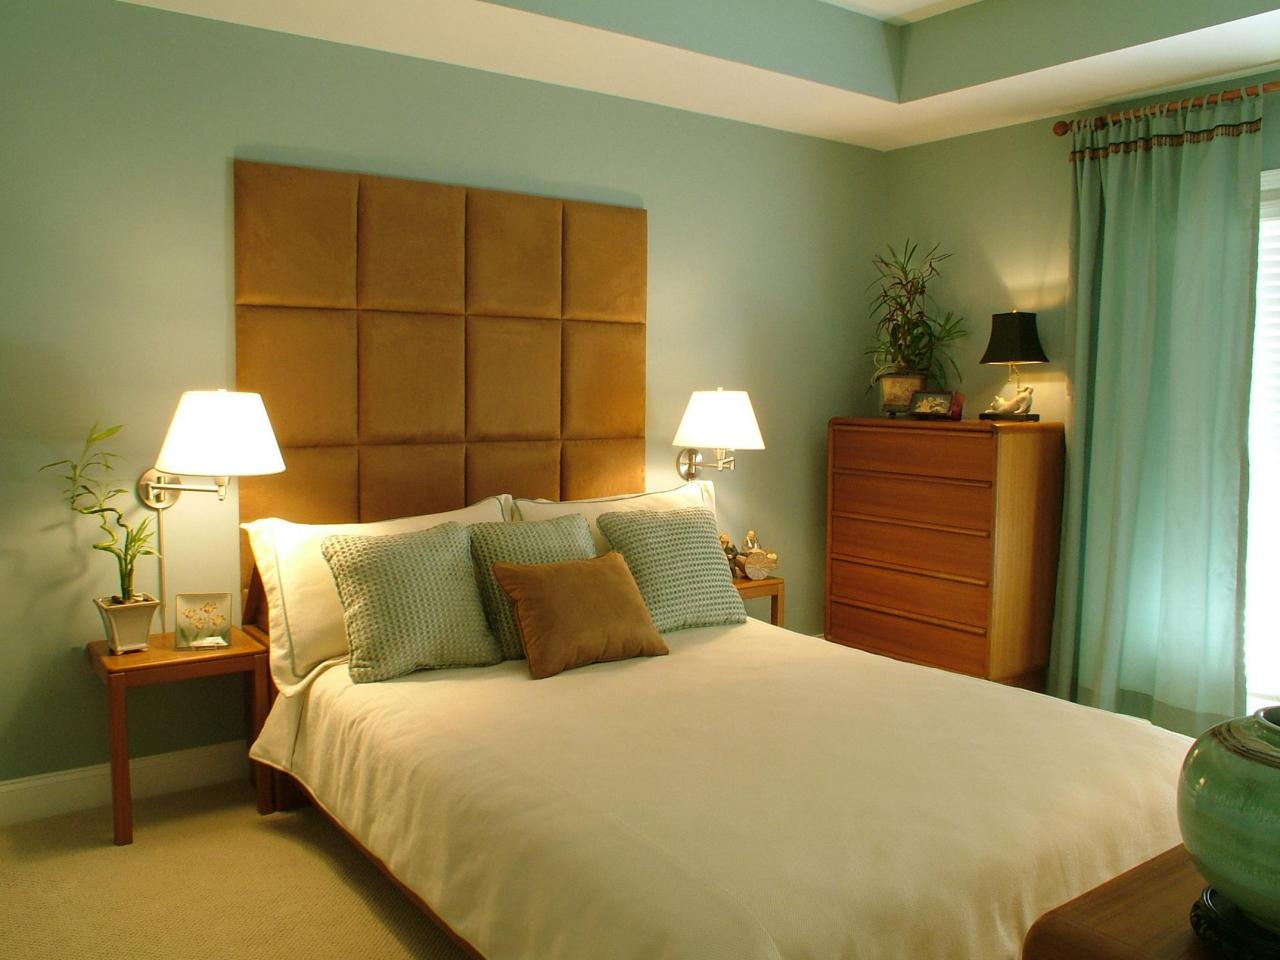 Bedroom Walls Bedroom Wall Color Schemes Pictures Options & Ideas  Hgtv